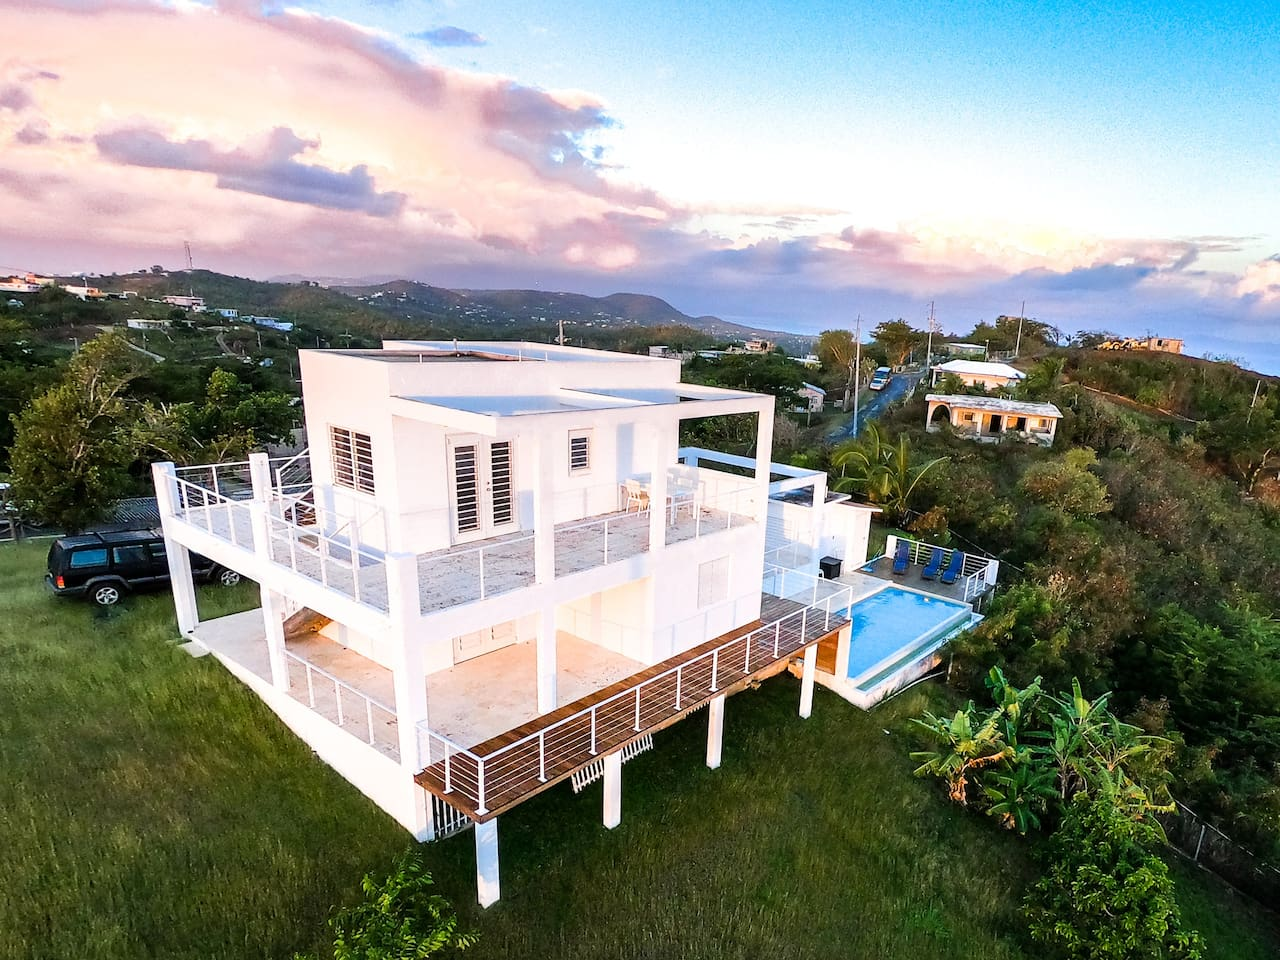 360Vieques - your romantic getaway.  A modern villa on top of one of the highest hilltops of Vieques with a private pool and 360 degree views.